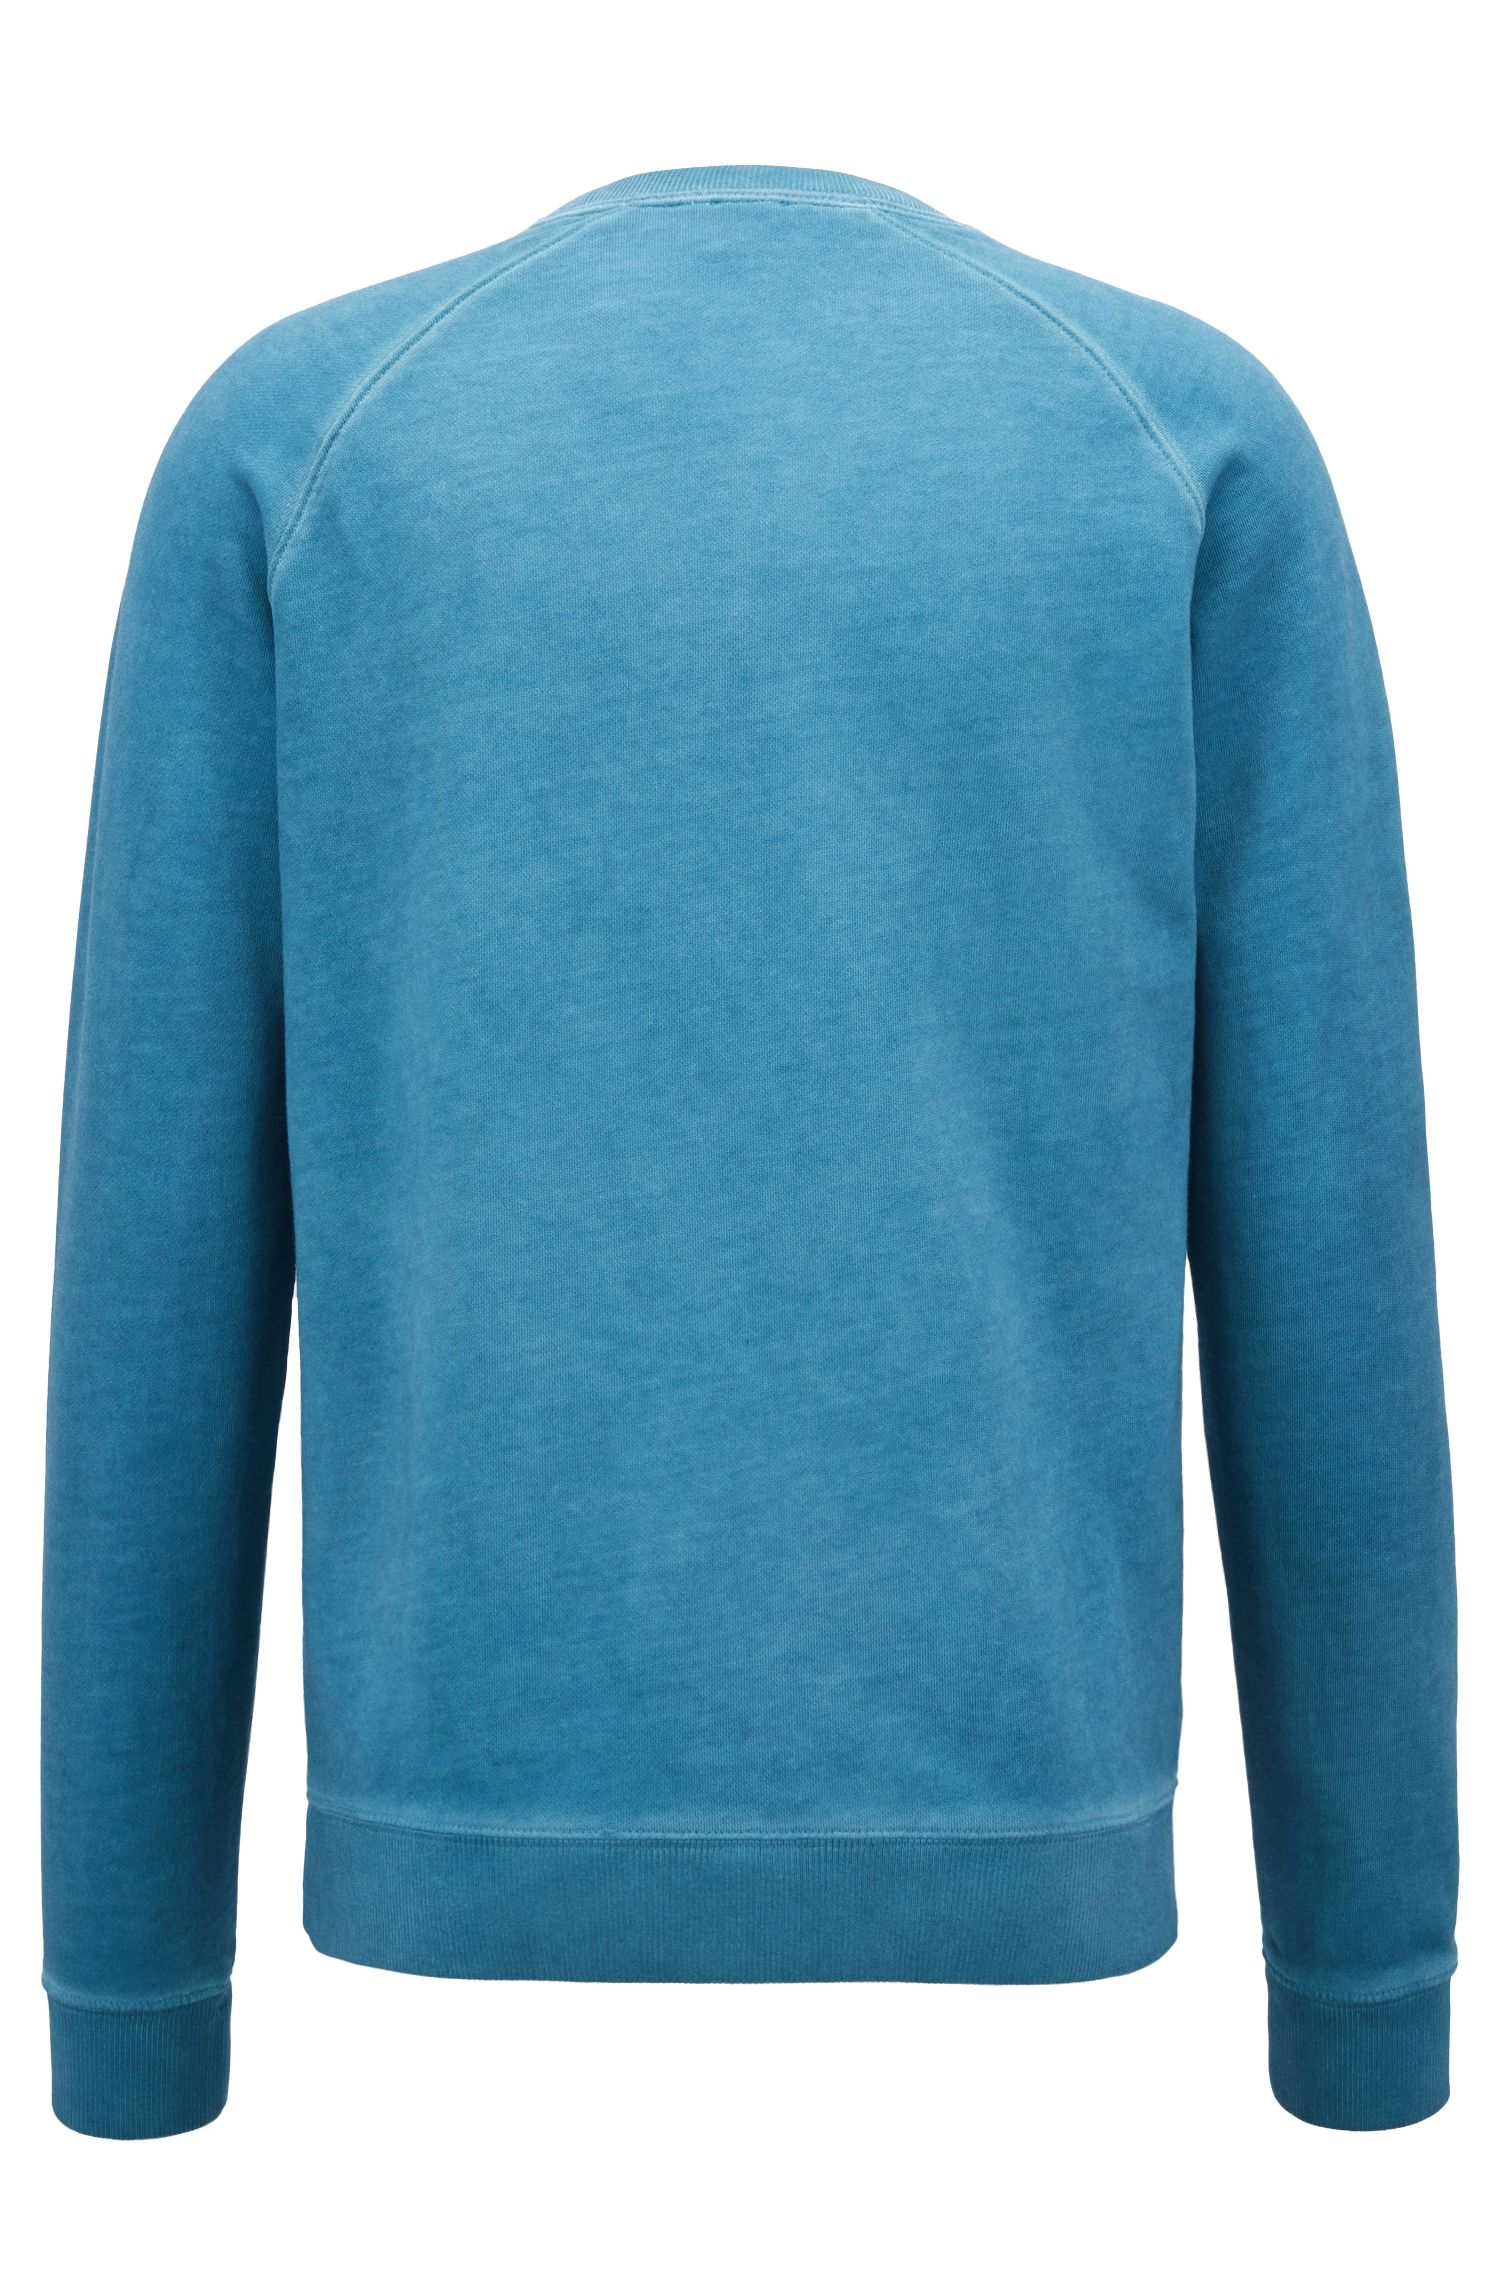 Sweat en molleton French Terry à logo brodé, Bleu vif